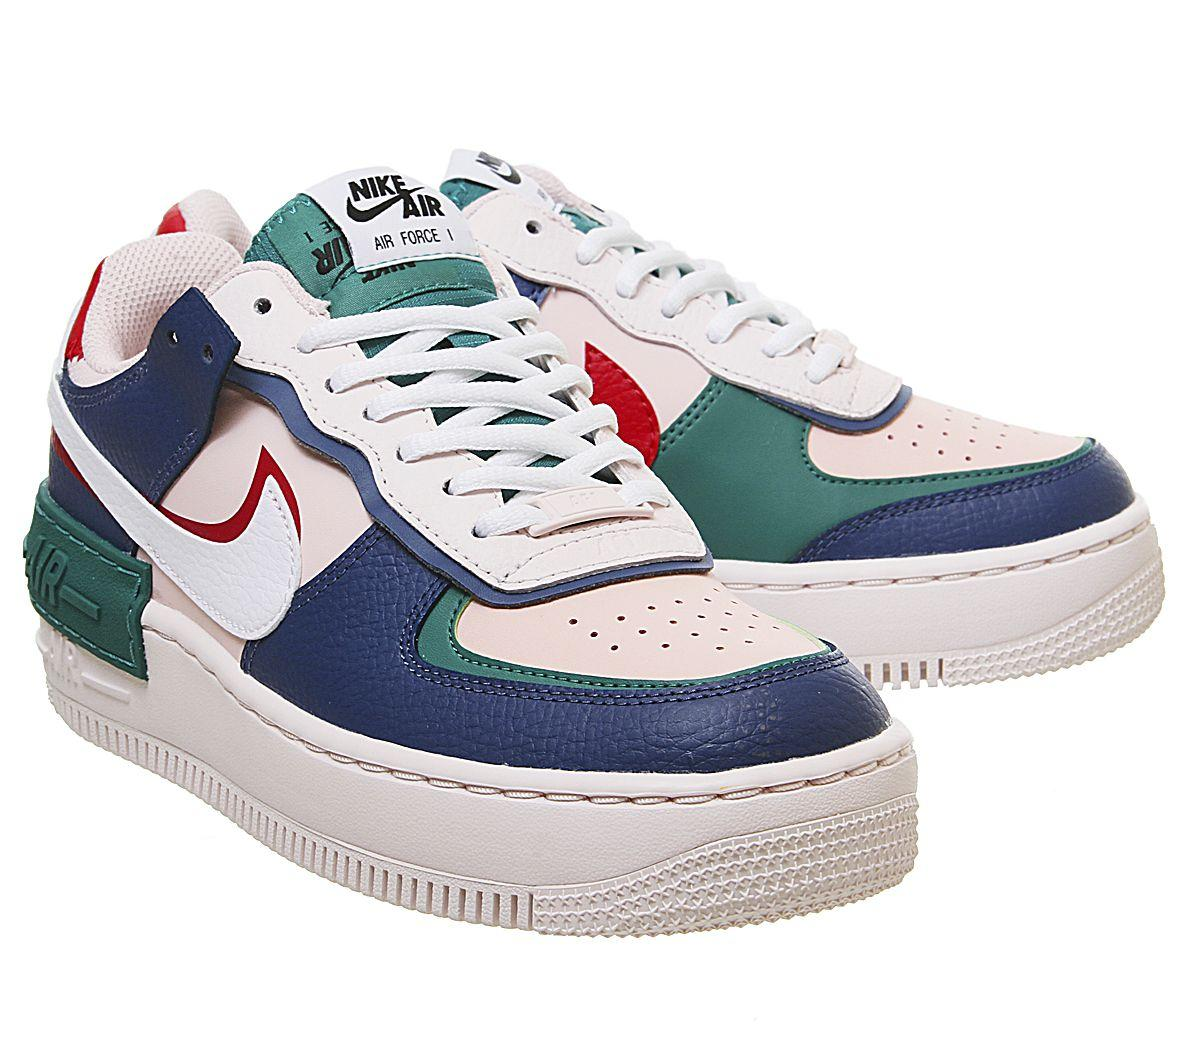 Nike Leather Air Force 1 Shadow In Navy Pink Blue Lyst The nike air force 1 shadow has arrived in another new color. air force 1 shadow